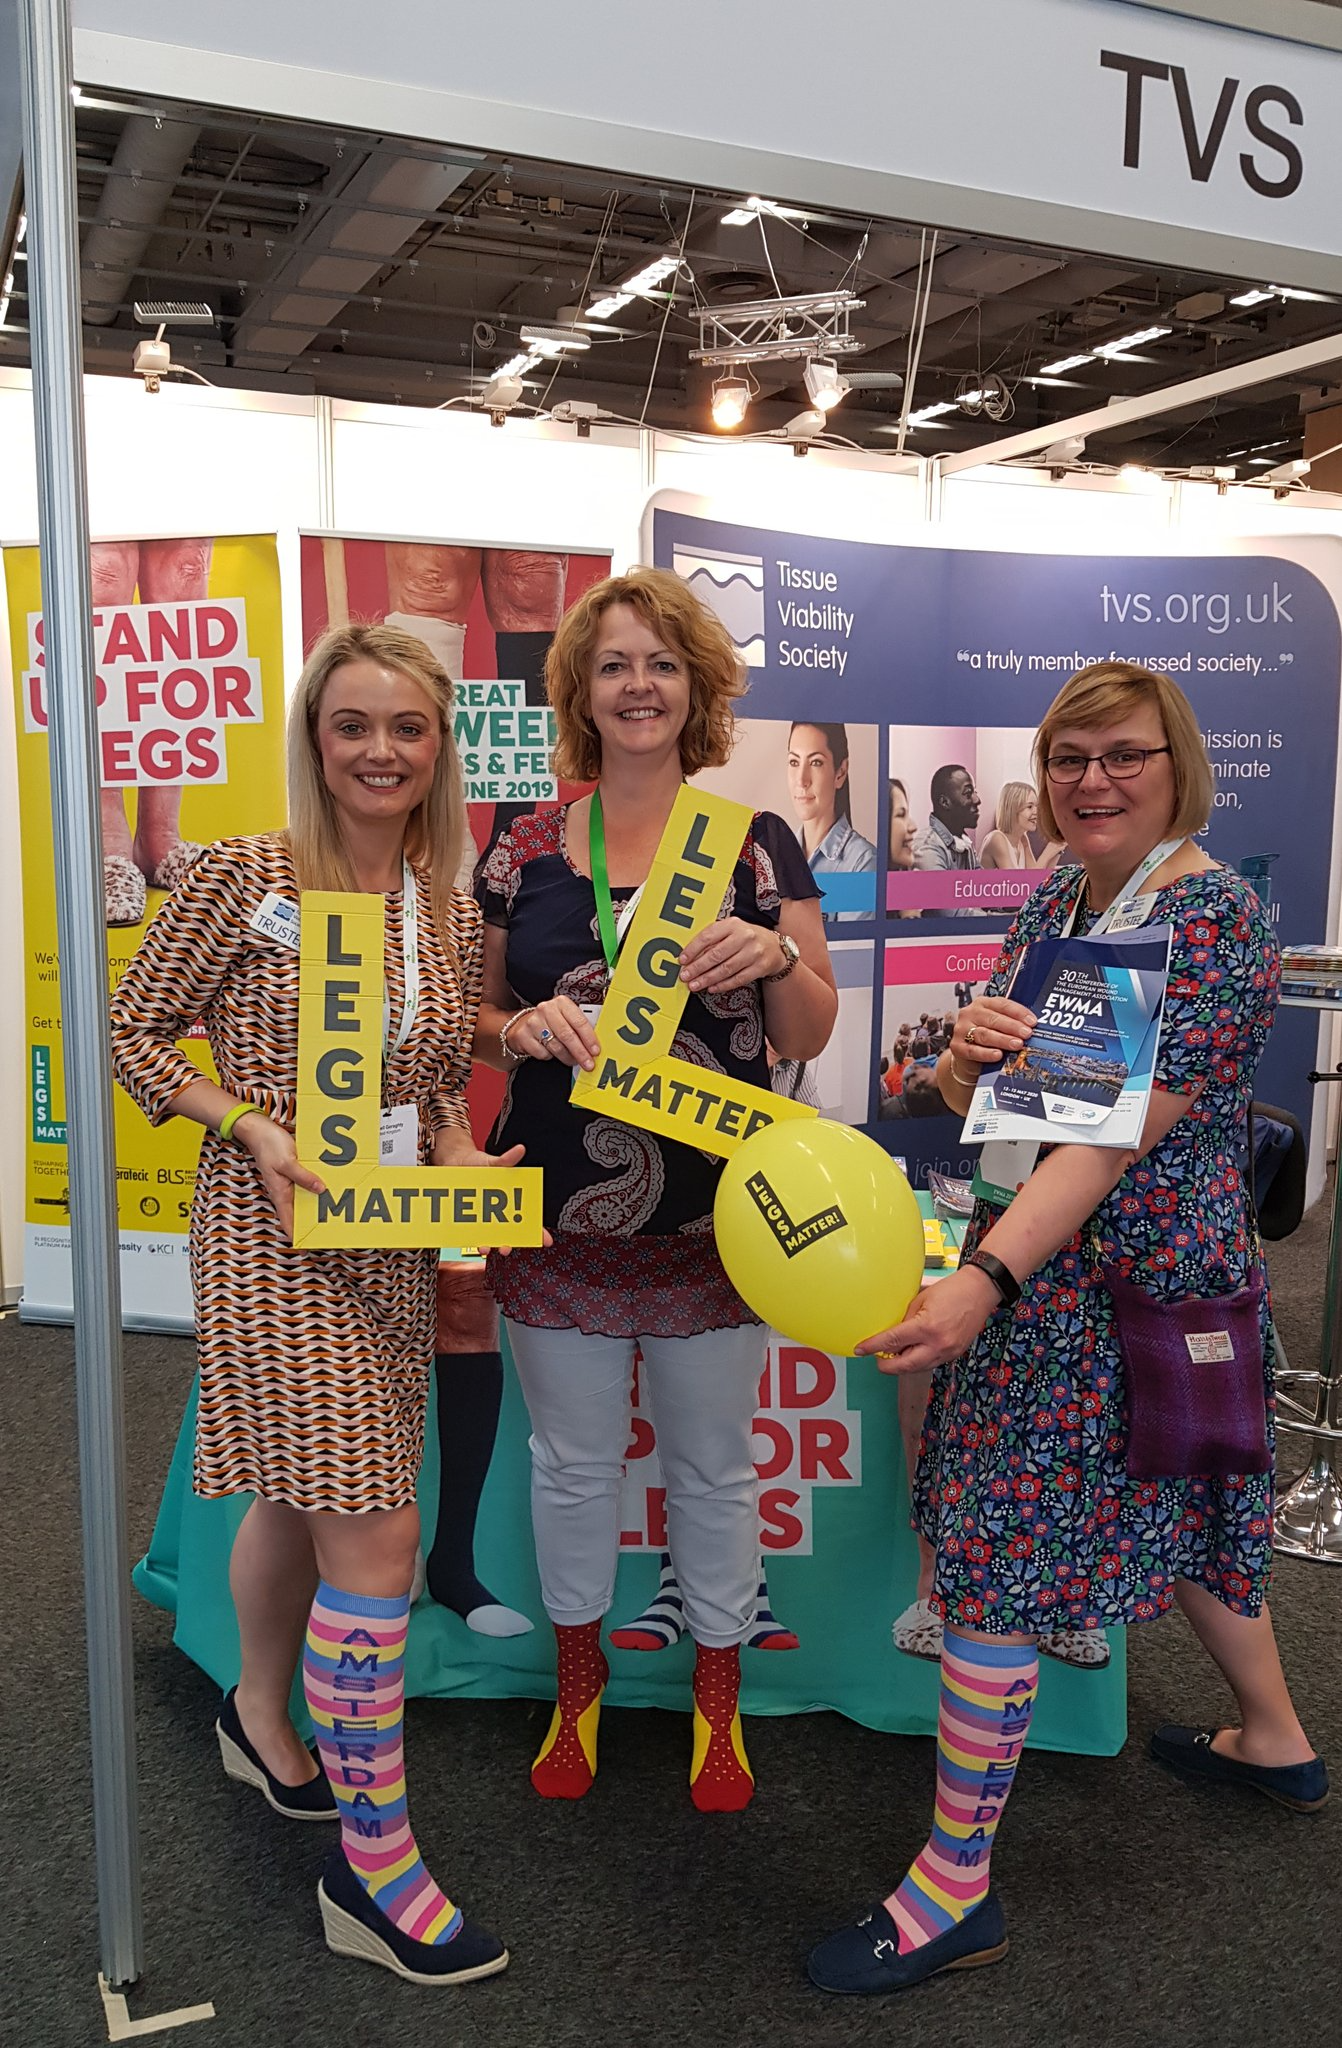 Dr Jemell Geraghty (left) with trustees from the Legs Matter campaign on tour. © Legs Matter